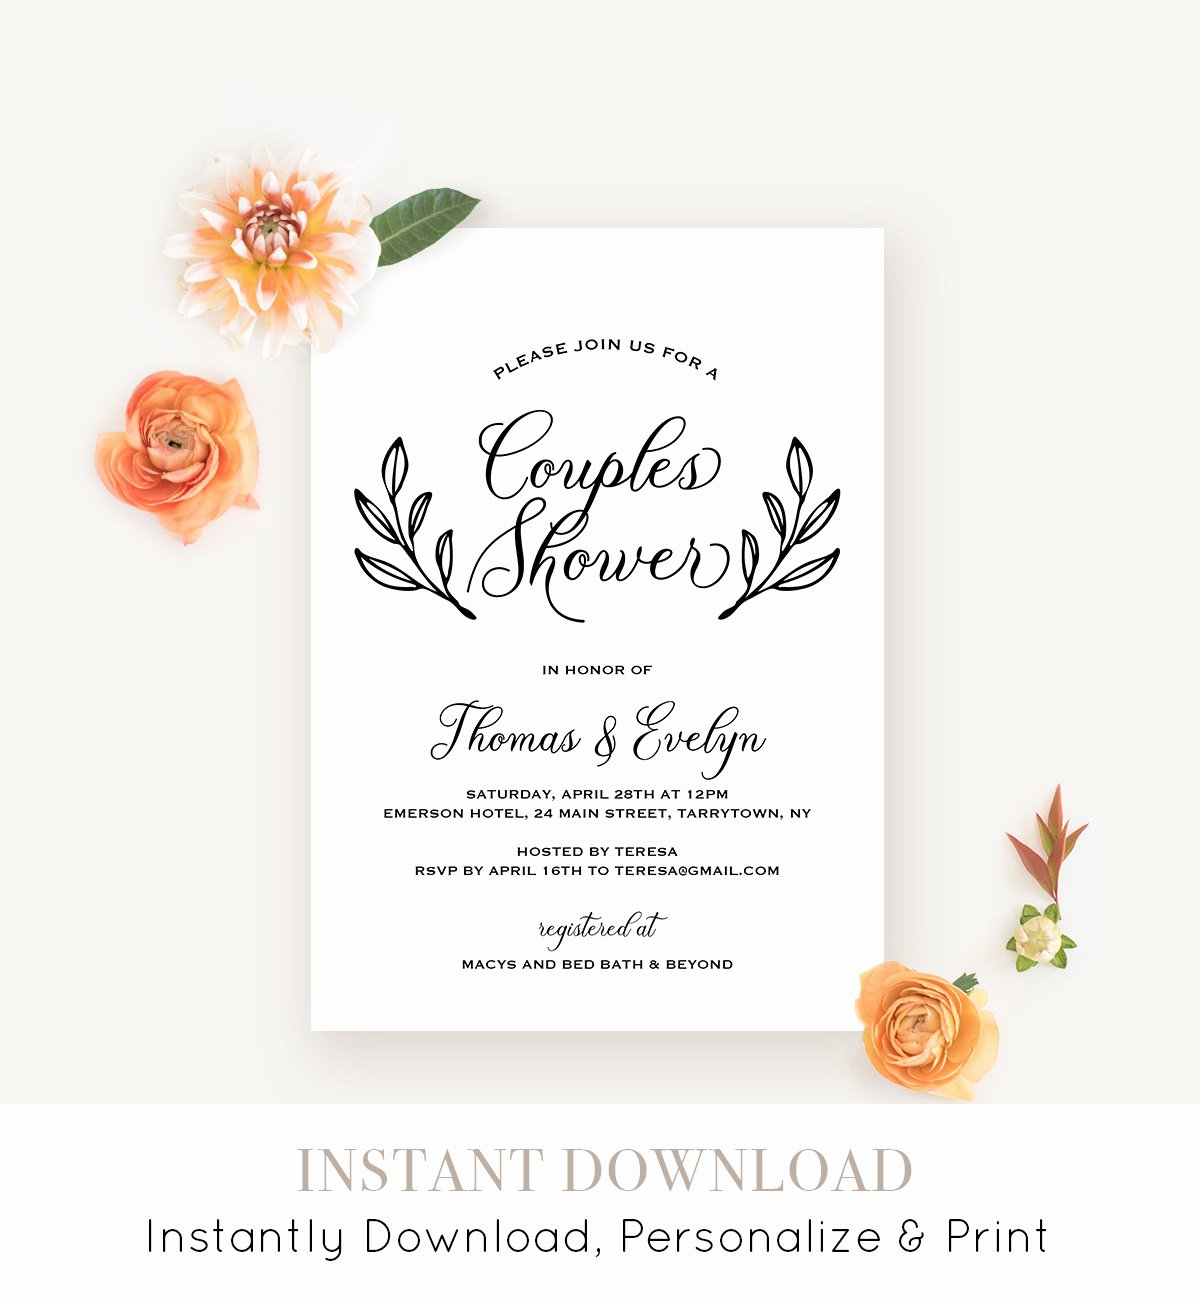 Couples Shower Invitations Template Lovely Couples Shower Invitation Template Printable Wedding Shower